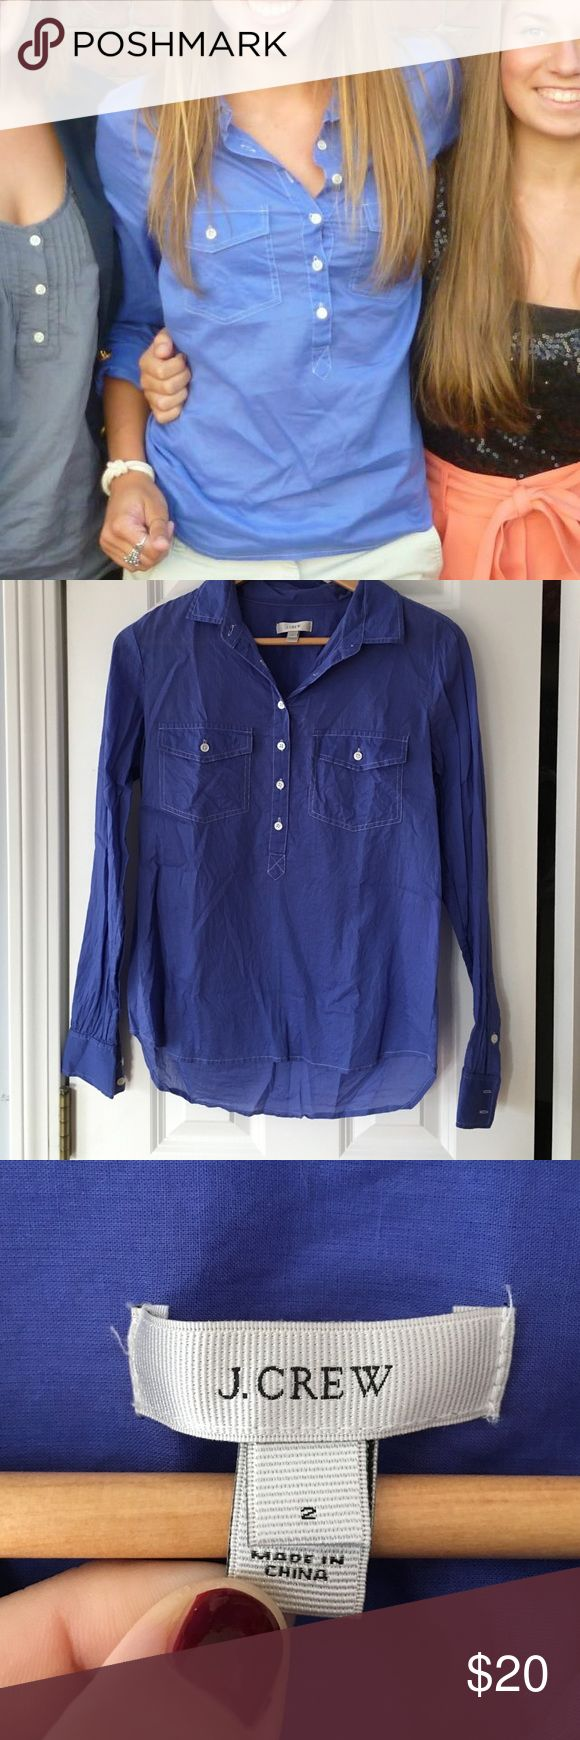 J Crew popover, size 2. Just like new. Easy, light, comfortable J Crew popover shirt. Perfect for layering with sweaters and vests or wearing in the spring and summer with shorts. Washed indigo color. J. Crew Tops Button Down Shirts